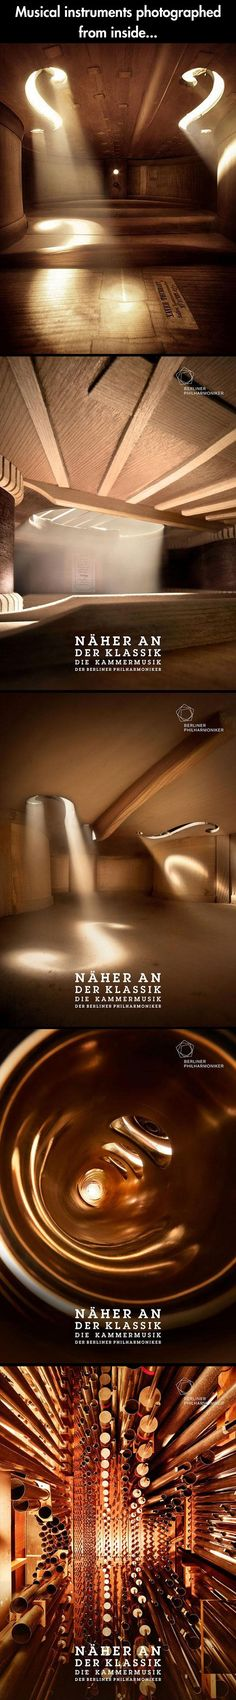 cool-instruments-photo-taken-from-inside